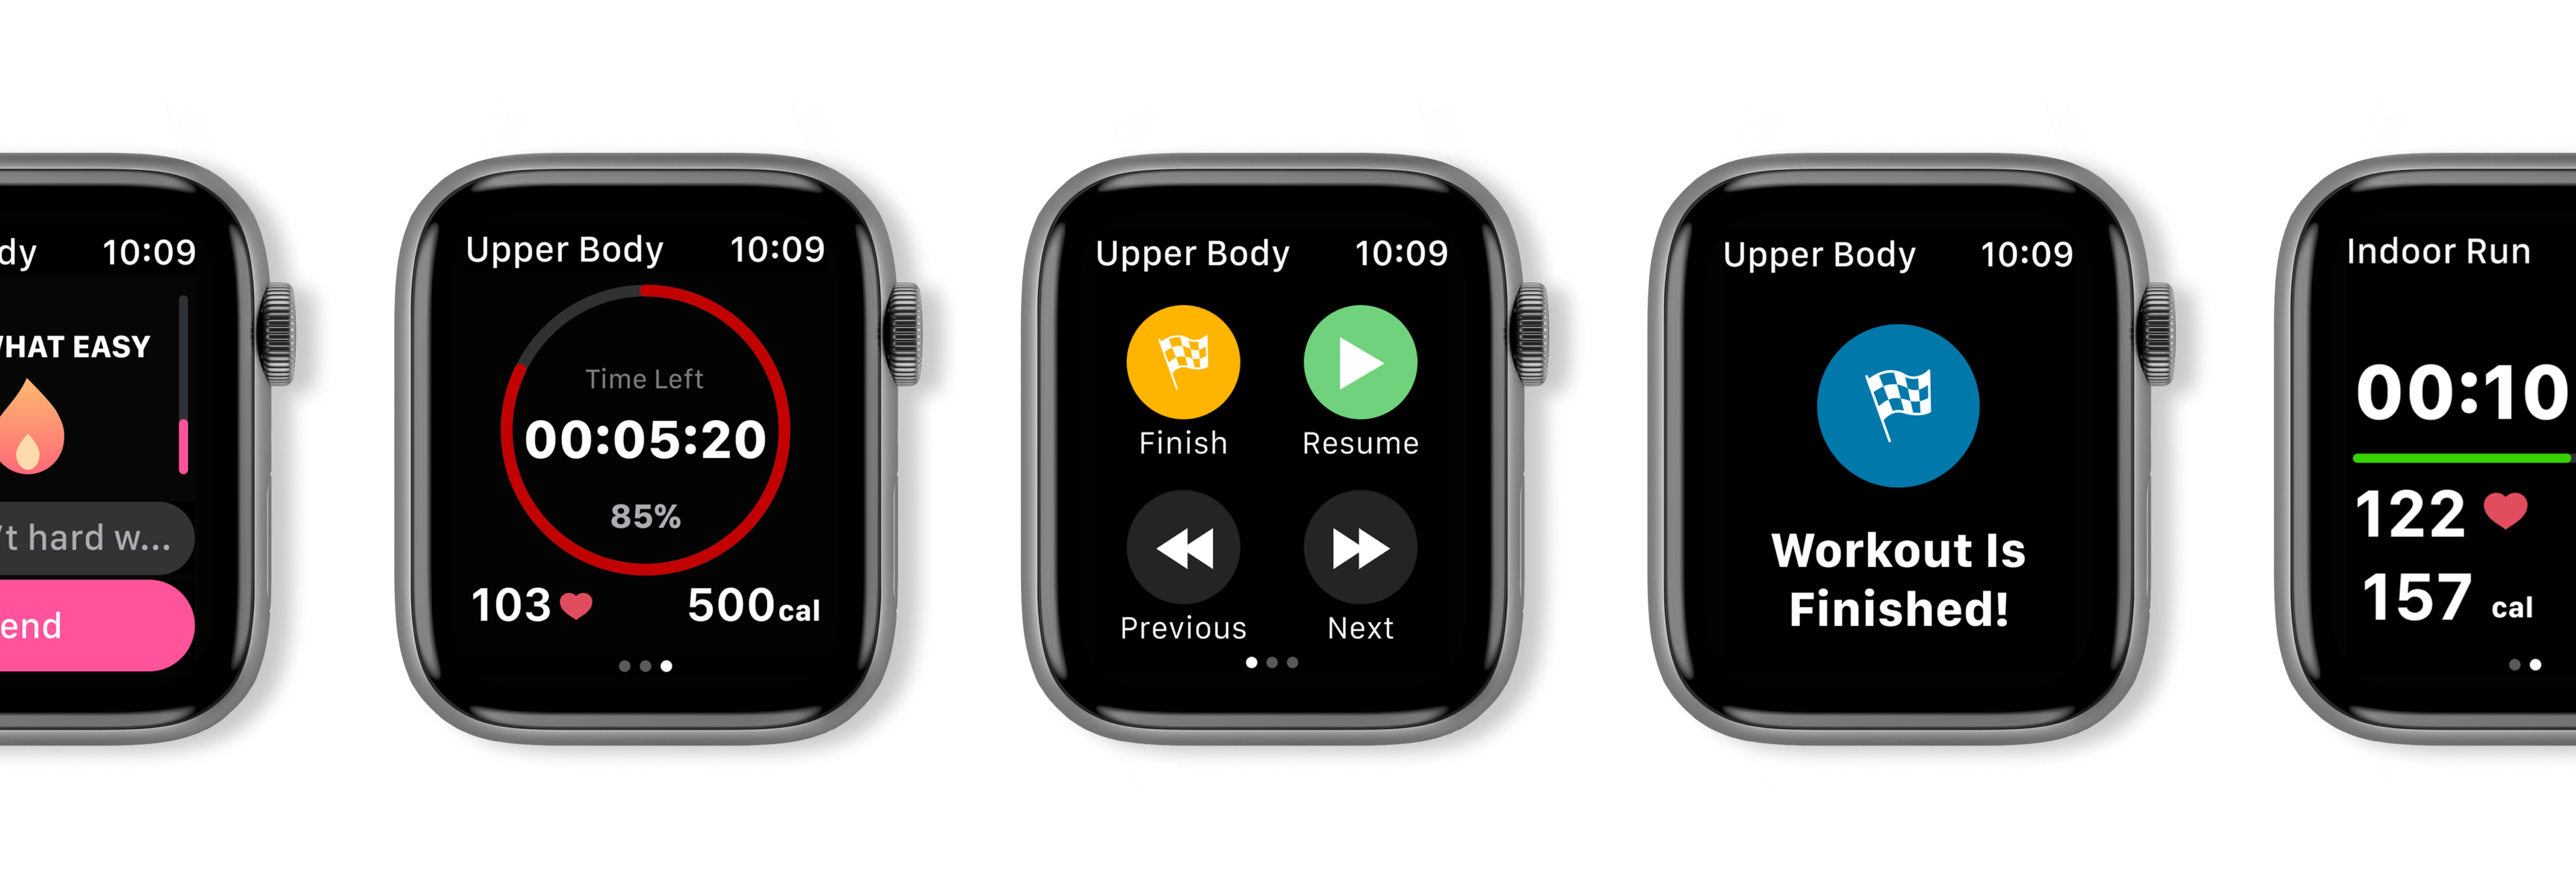 Apply custom branding to the new Apple Watch App powered by Trainerize